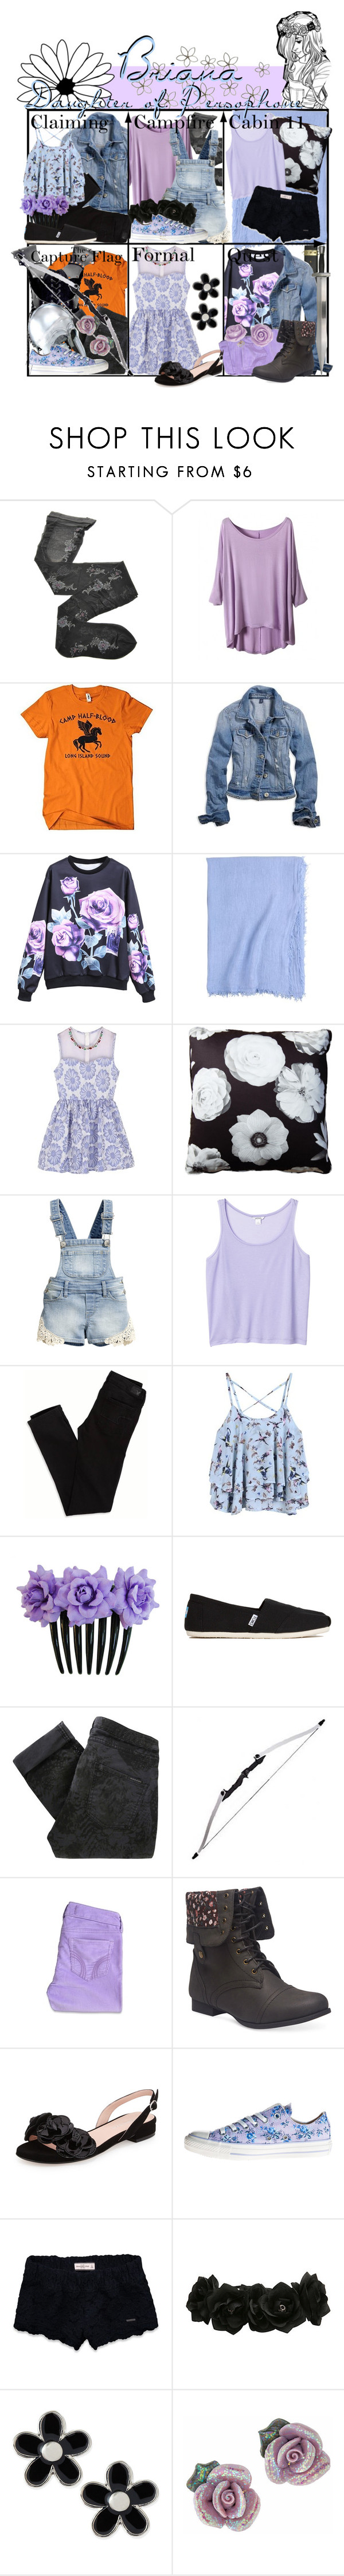 """""""Requested by scarlett-iconer: Briana Daughter of Persophone ~ Wardrobe"""" by liesle ❤ liked on Polyvore featuring Fogal, American Eagle Outfitters, Frette, S.W.O.R.D., Stuart Lawrence, H&M, Monki, TOMS, Maison Scotch and Hollister Co."""